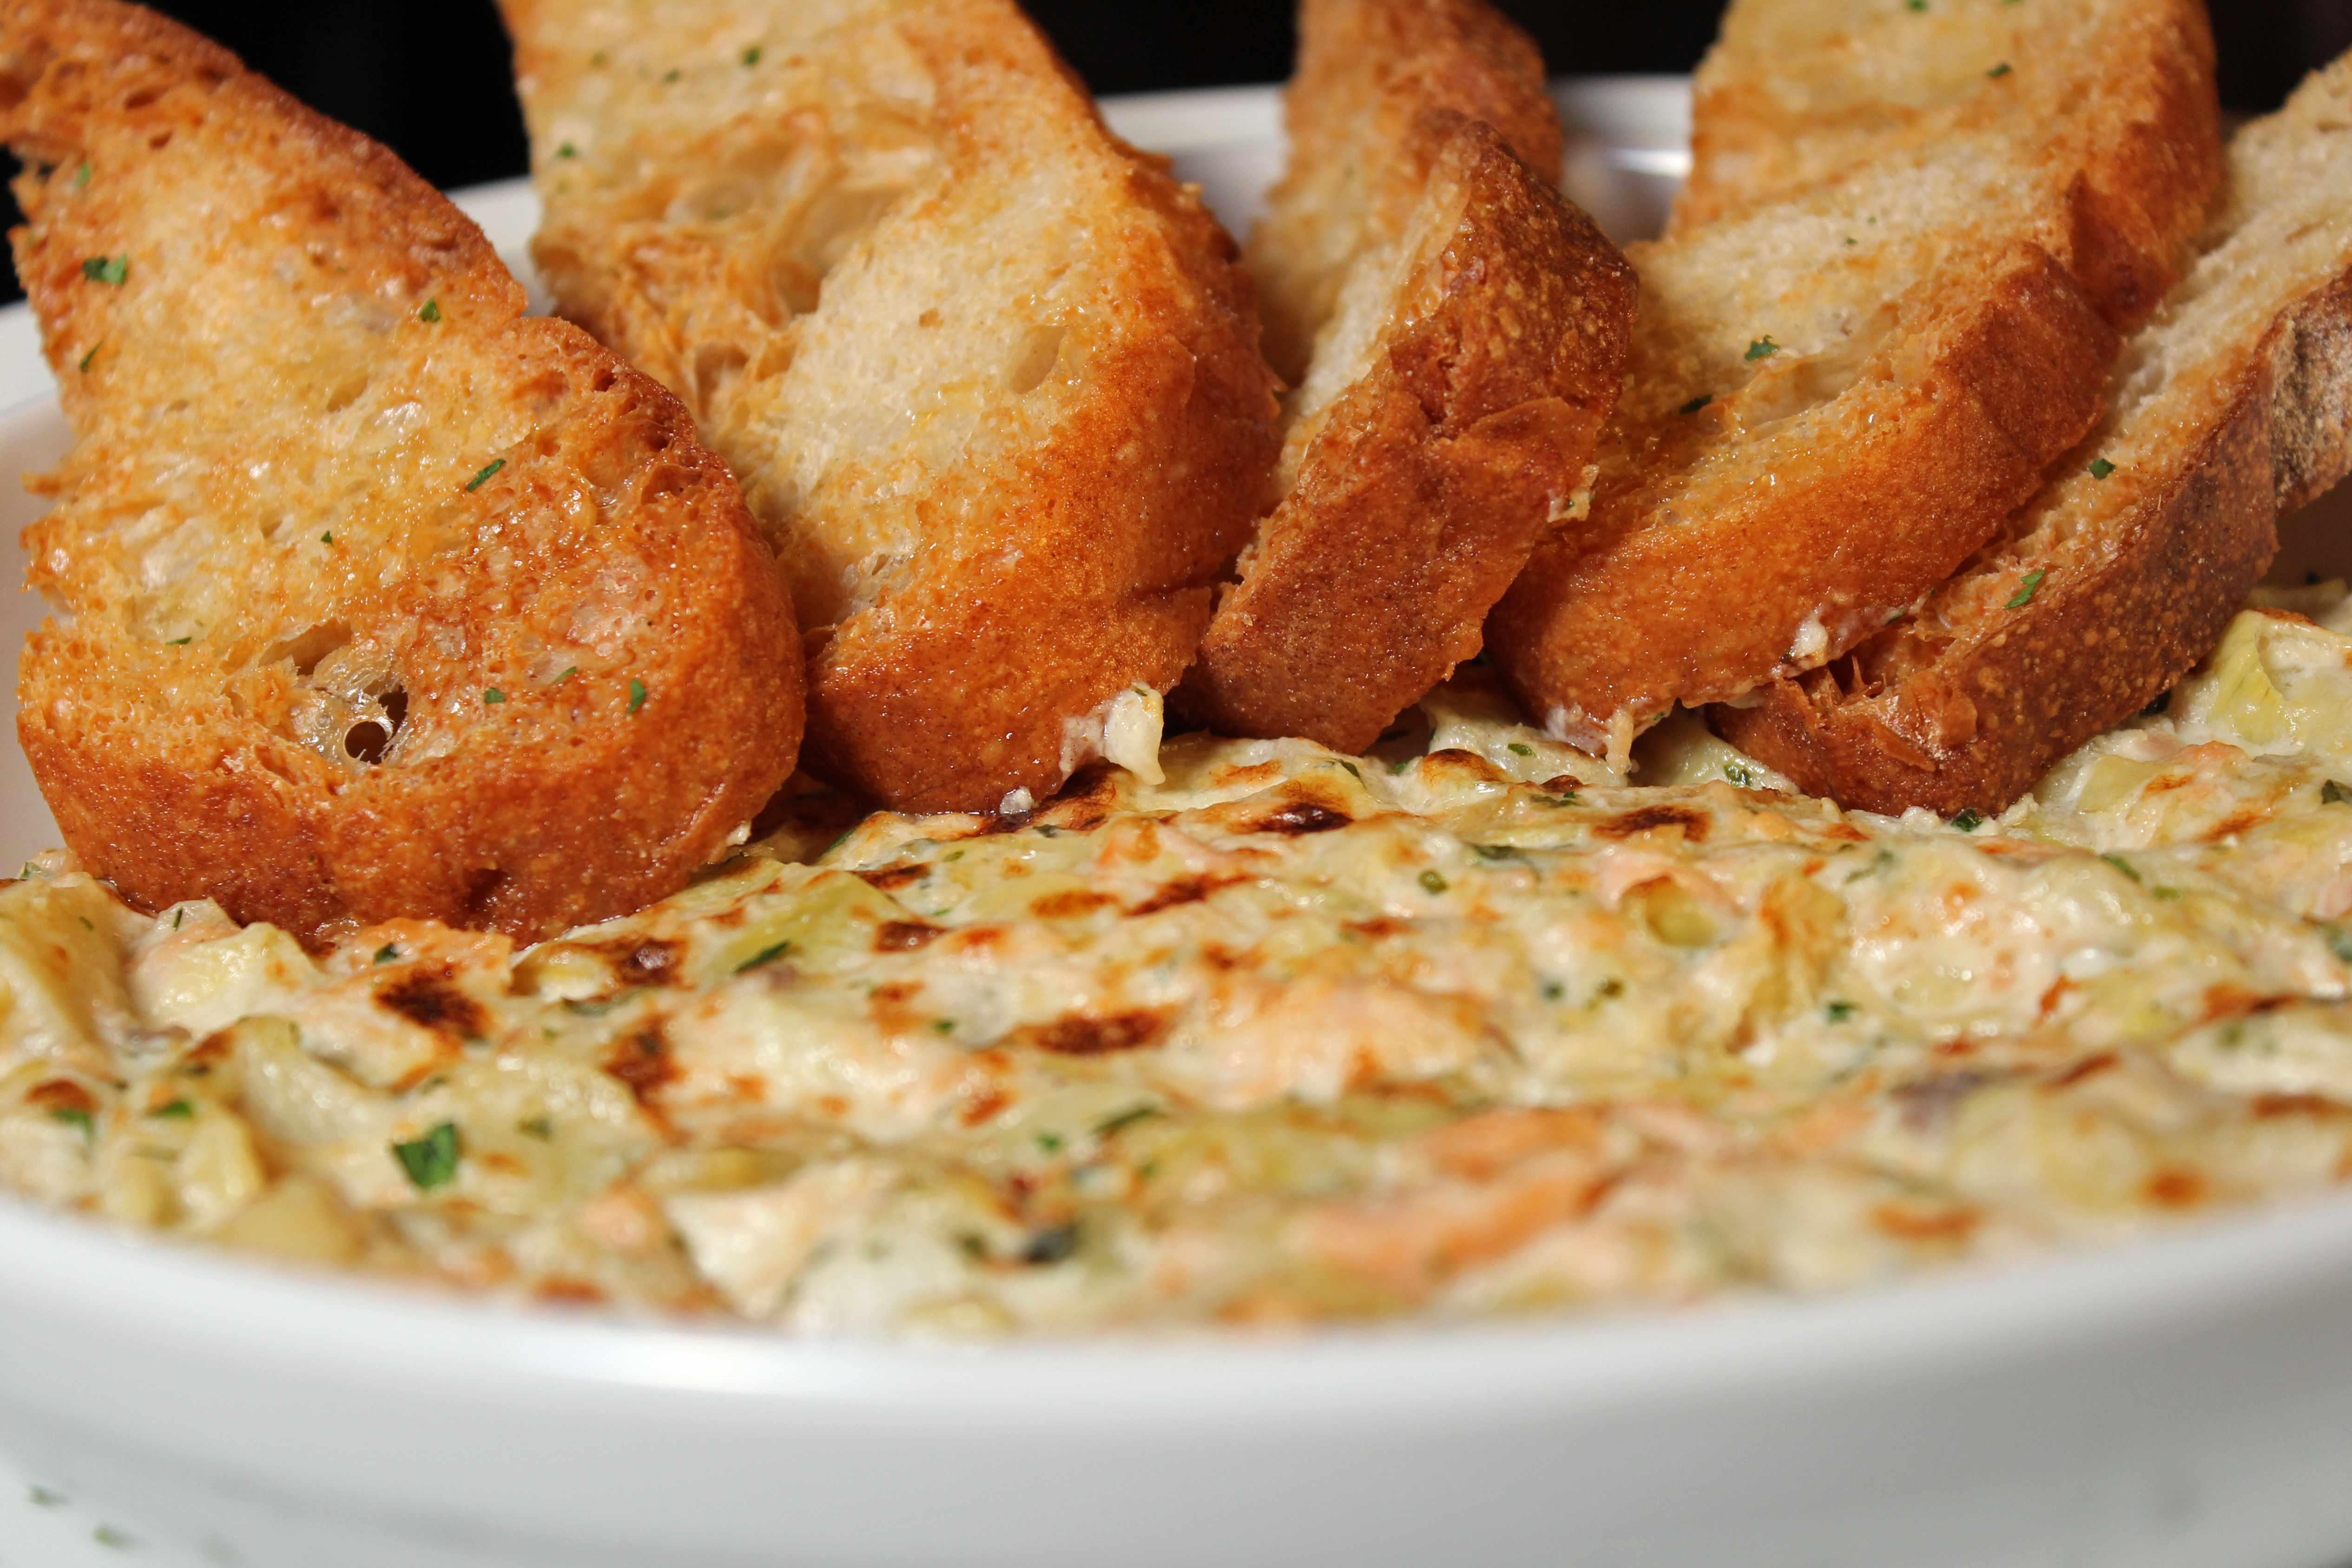 House Smoked Salmon Artichoke Dip